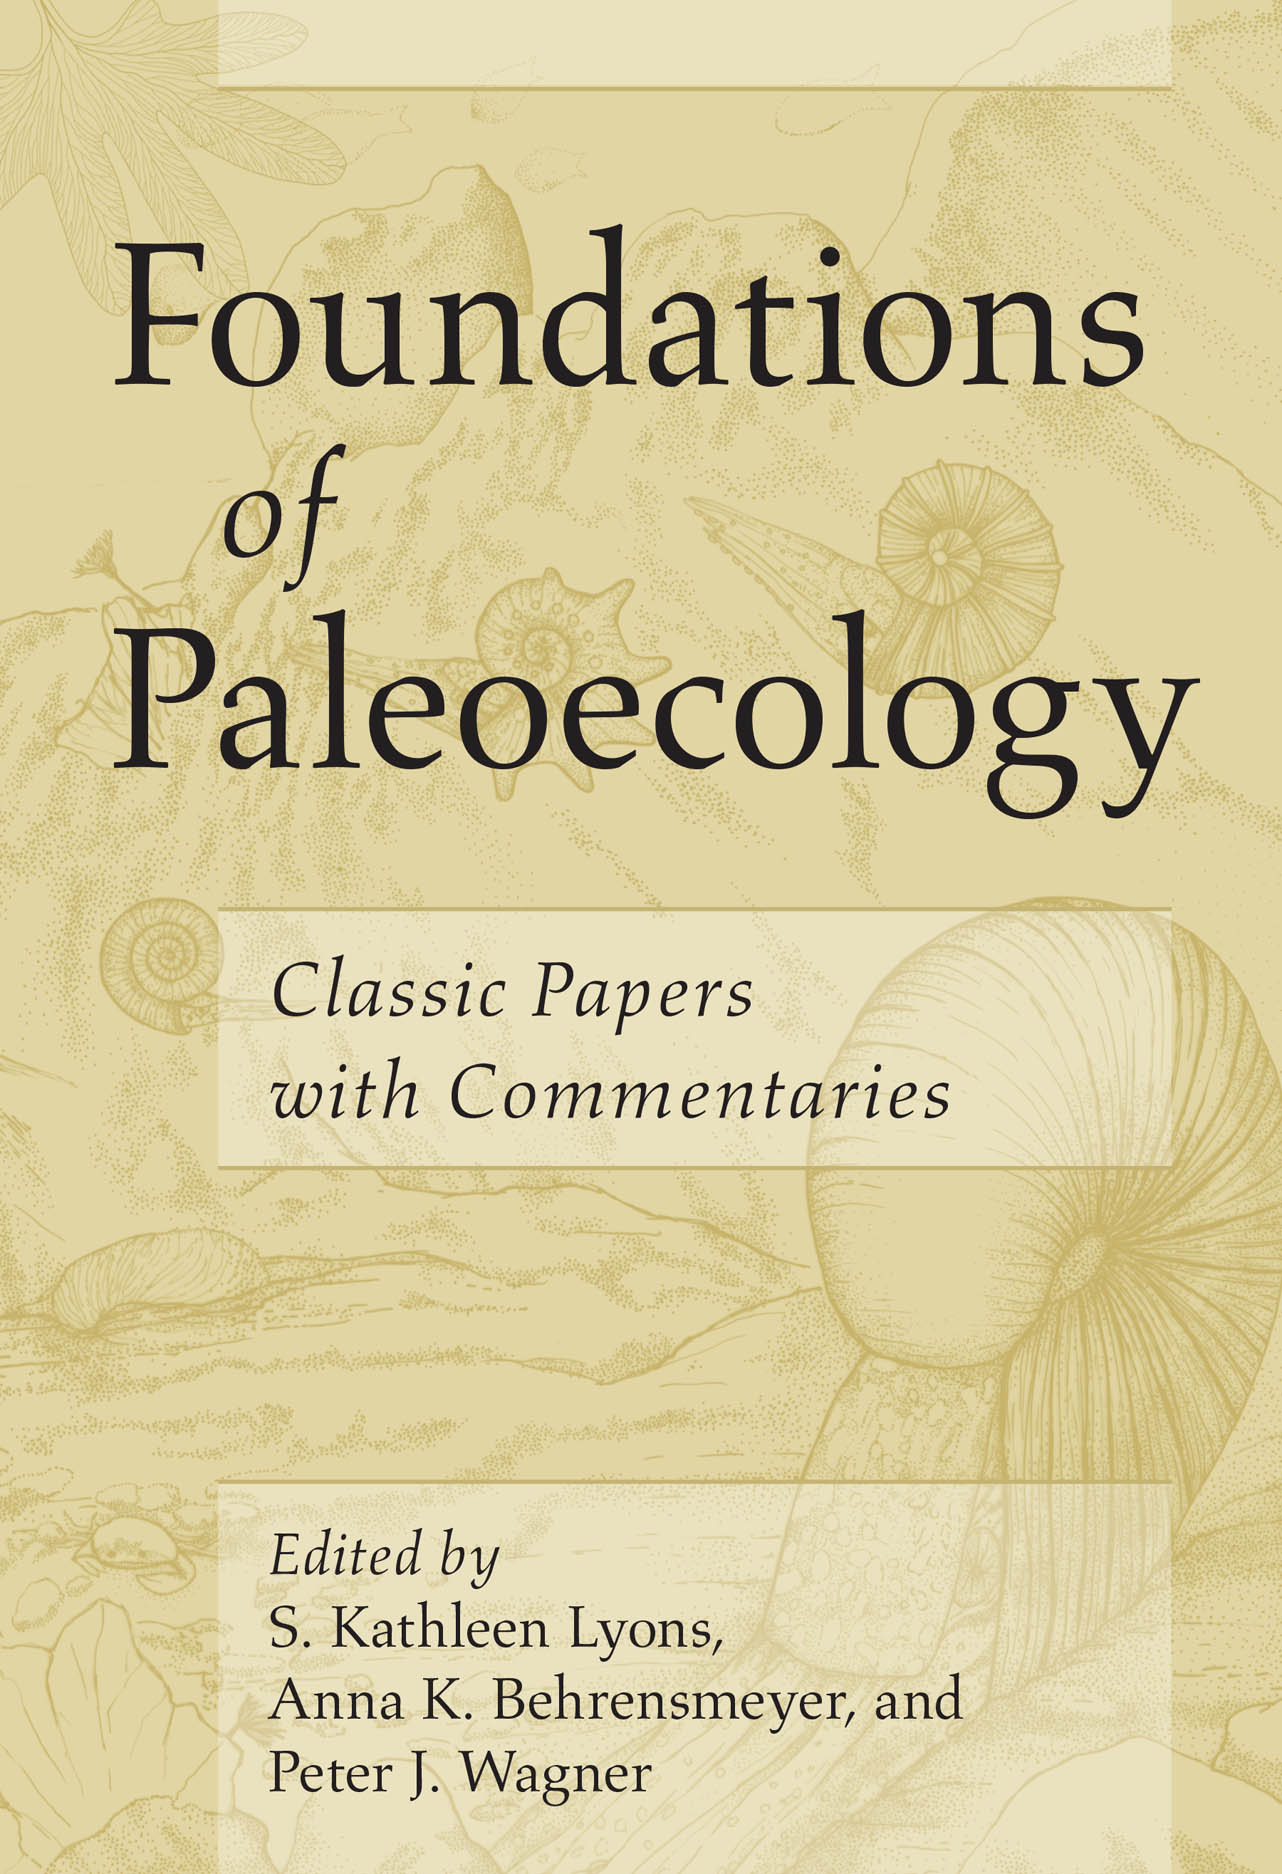 Foundations of Paleoecology: Classic Papers with Commentaries